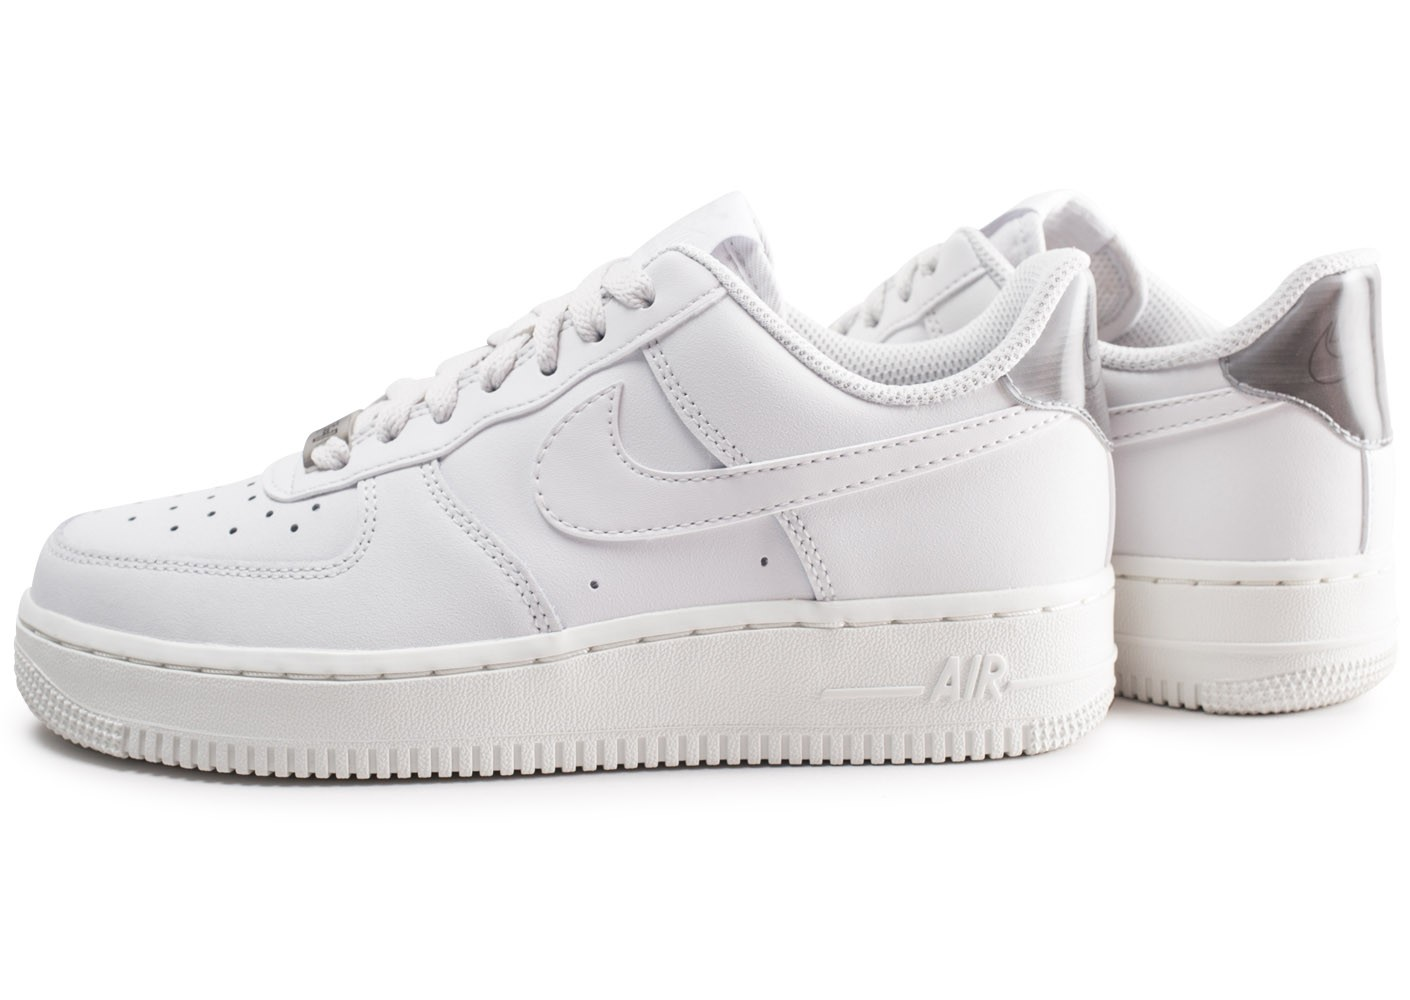 Nike Et Air Force Femme 1 '07 Blanche Chaussures Essential Grise DWH29EI